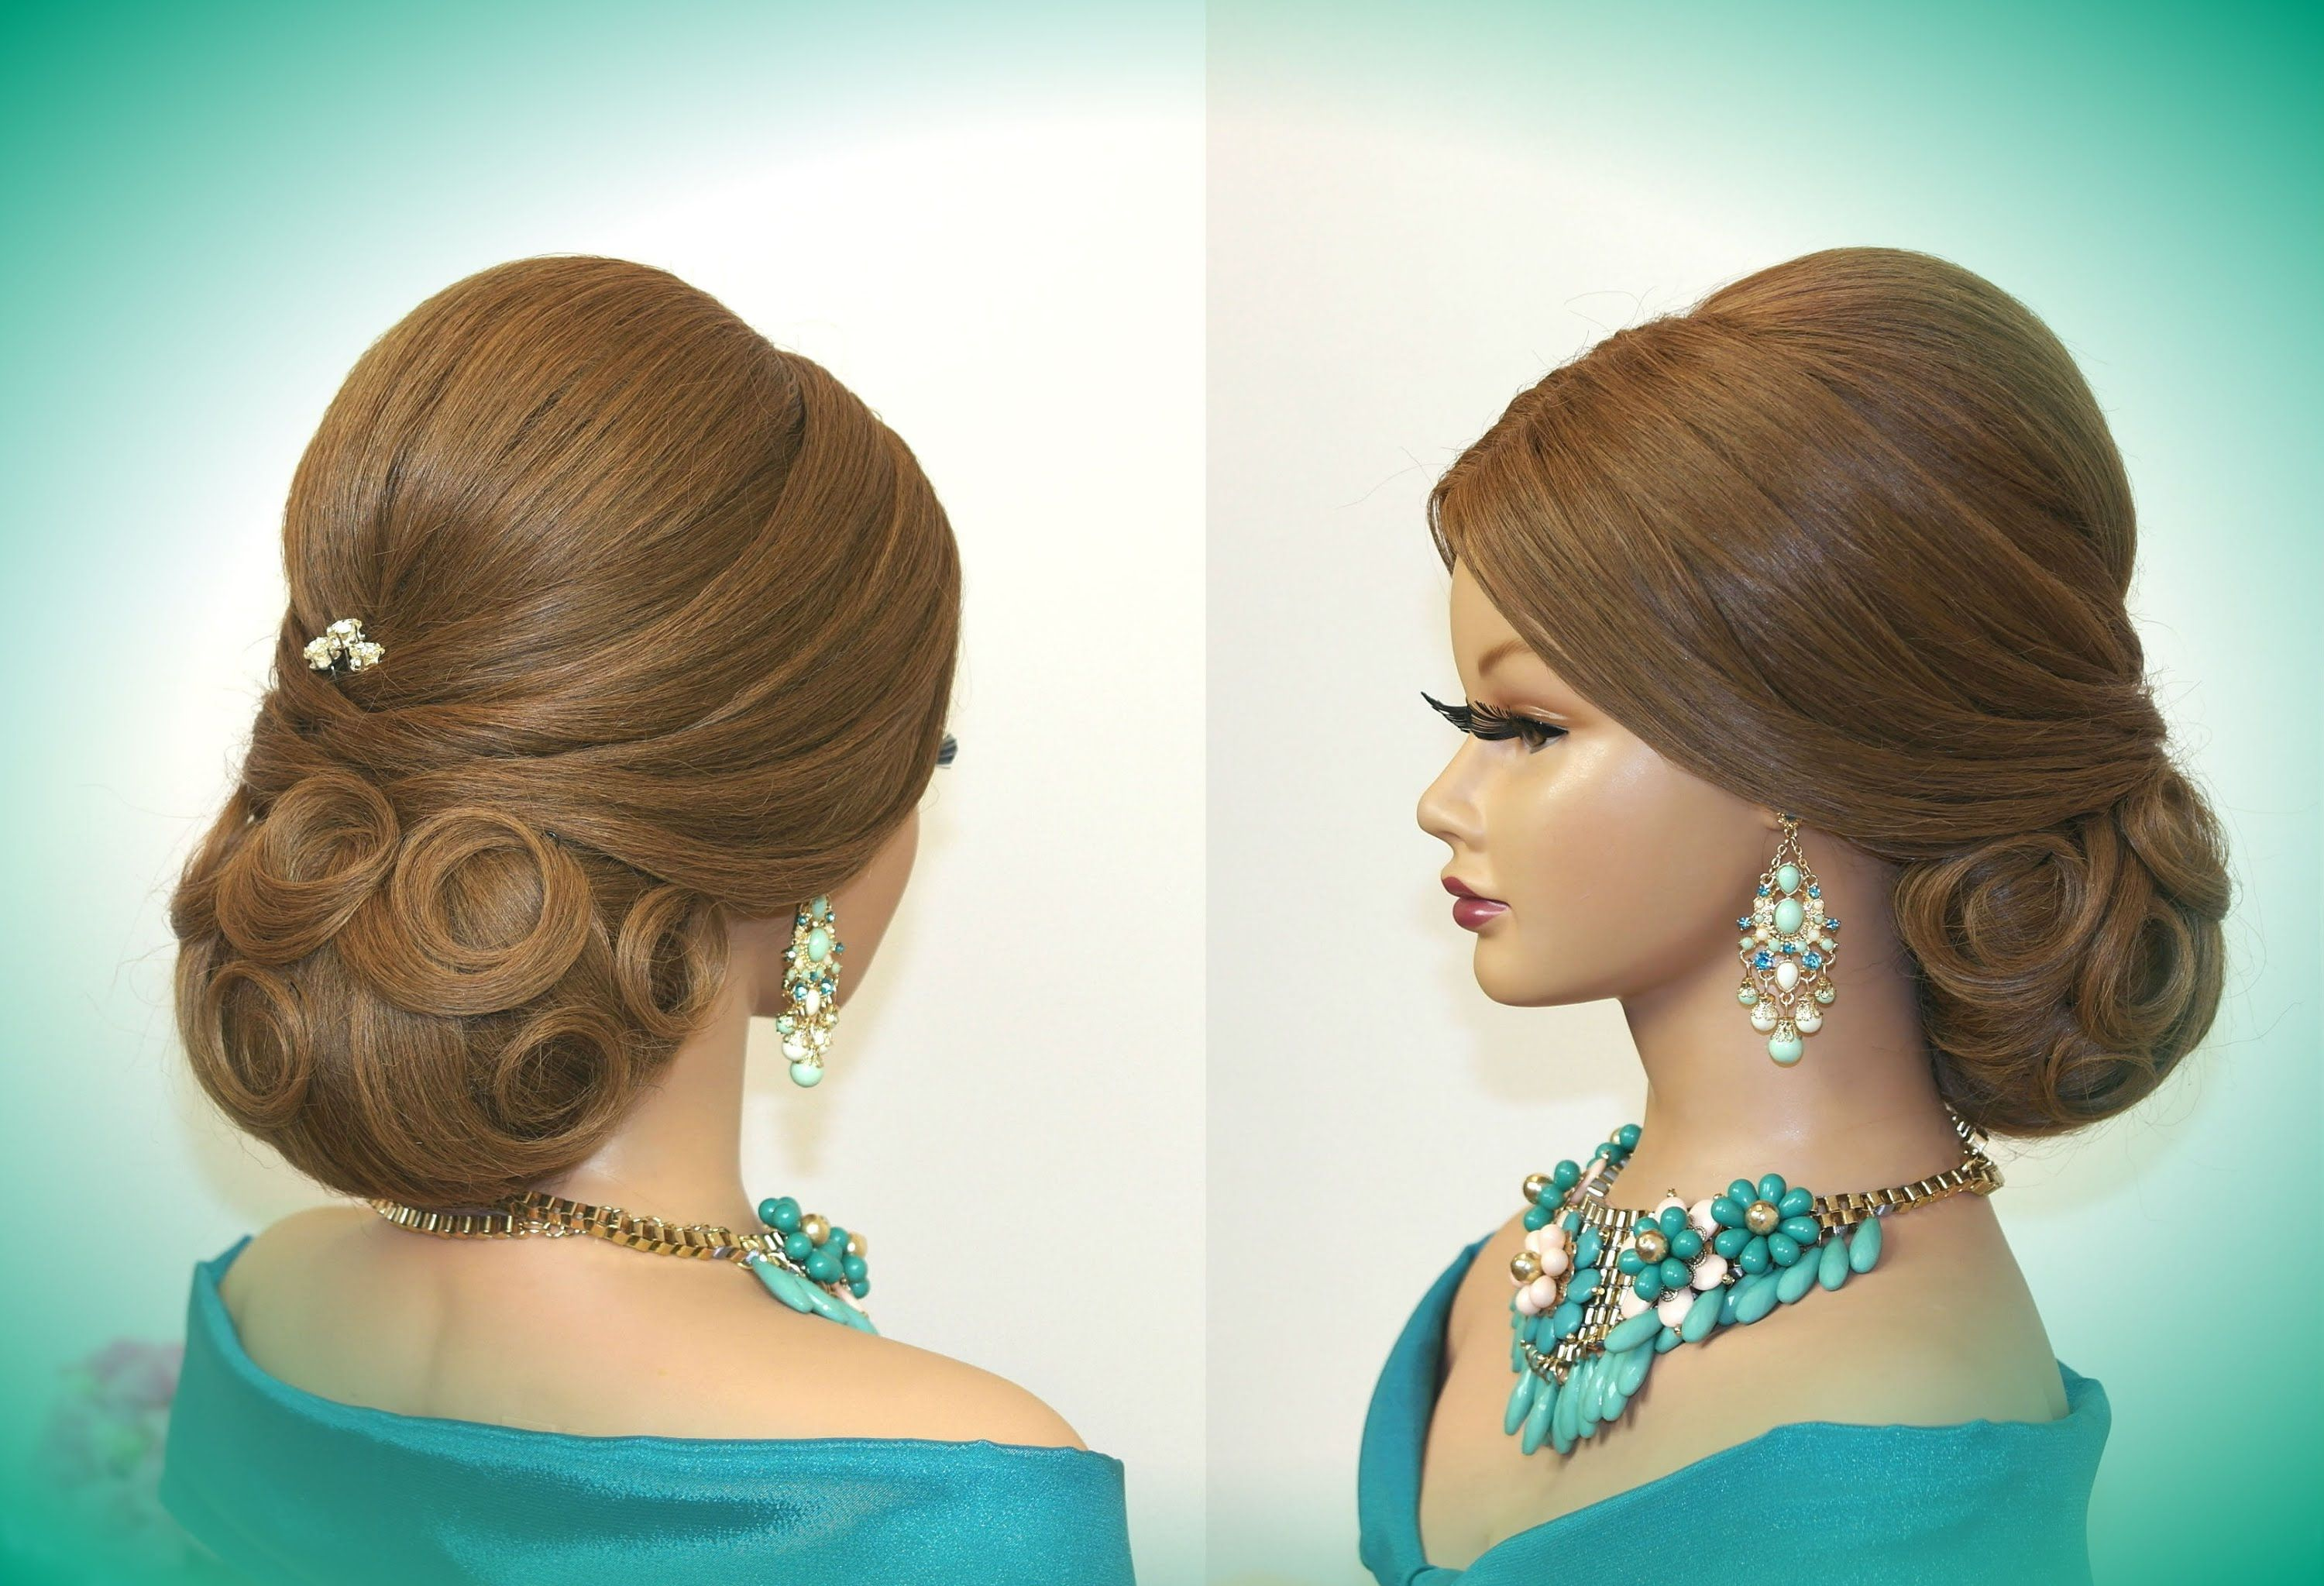 hairstyles for long hair. updo hairstyles. wedding bridal